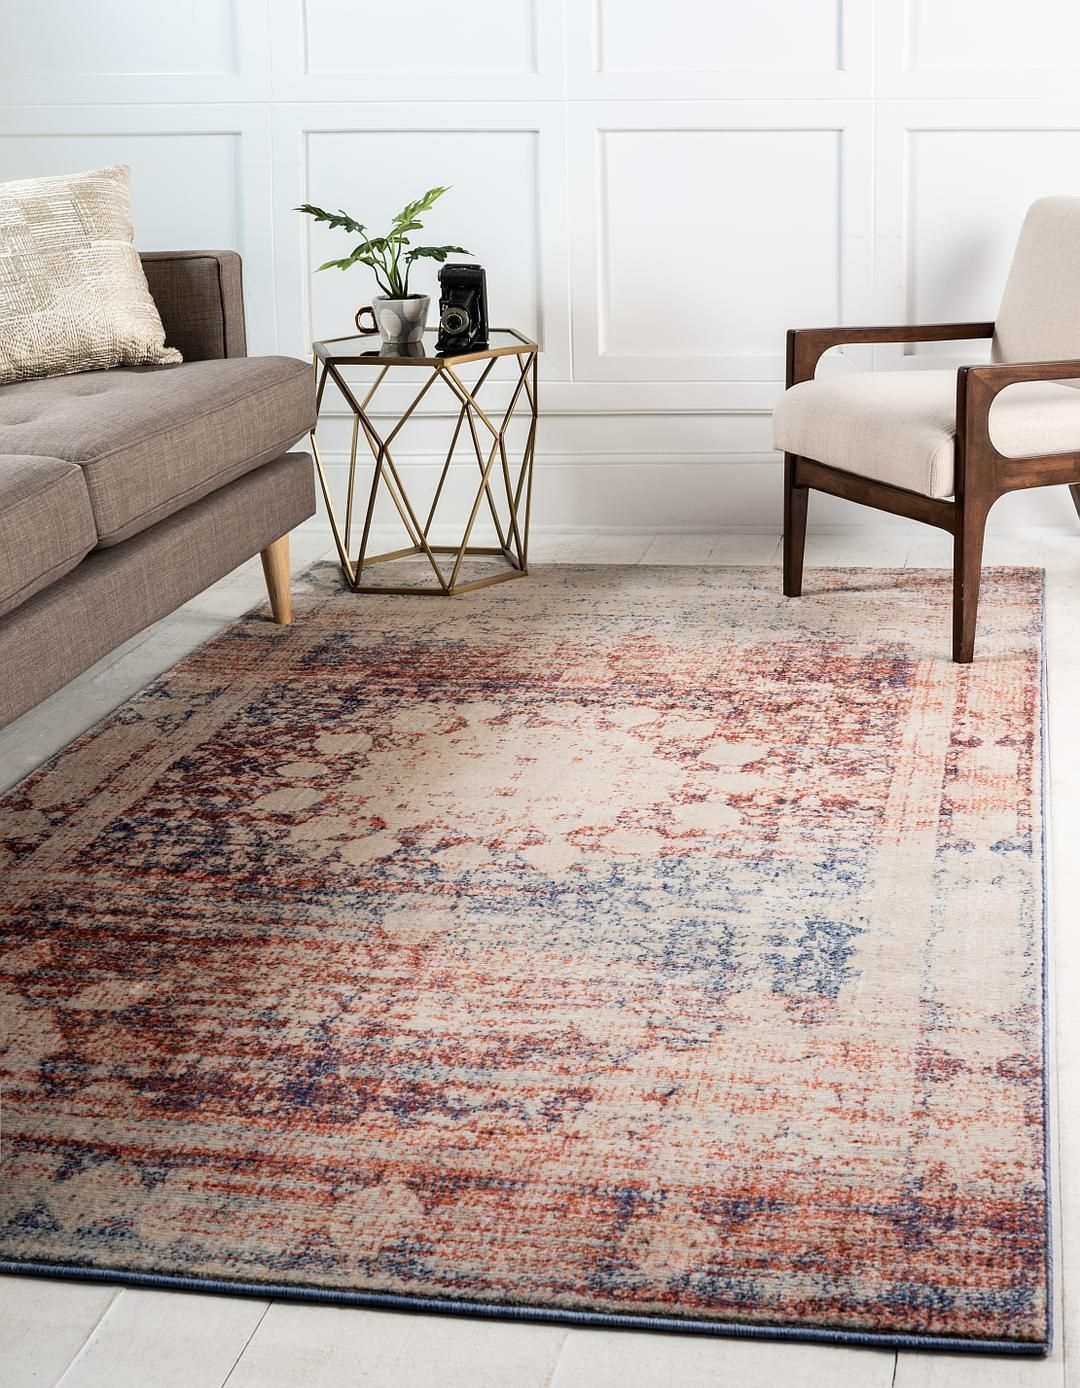 Comely Rugs for Living Room 9x12 On Delightful 9x12 Berkshire area Rug On Rugs for Living Room 9x12